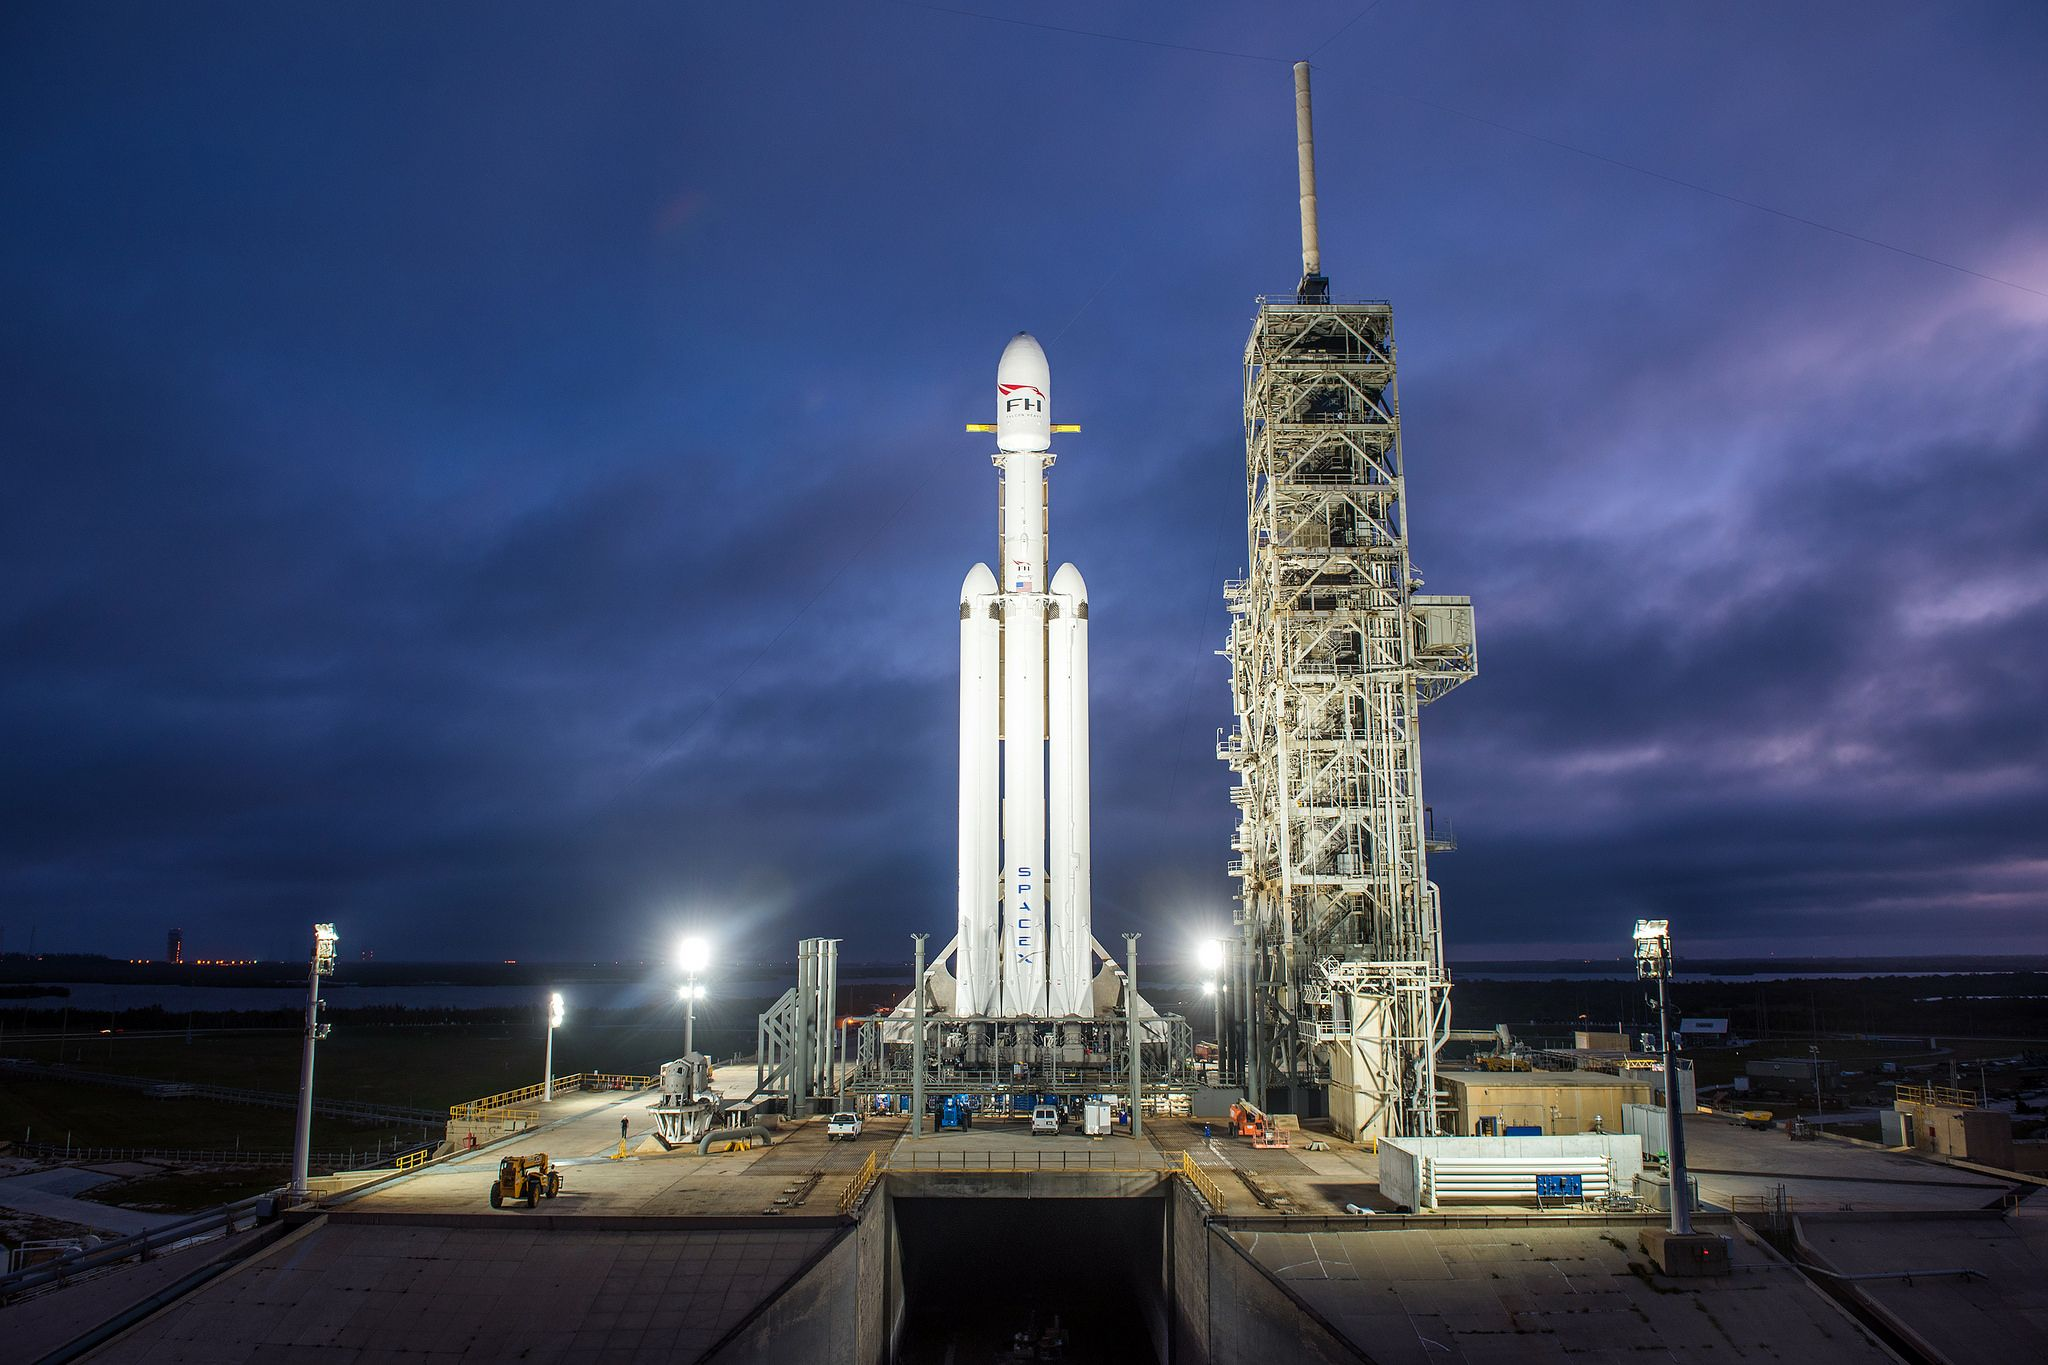 Elon Musk: SpaceX Falcon Heavy Rocket Set to Launch in a Week After Successful Test